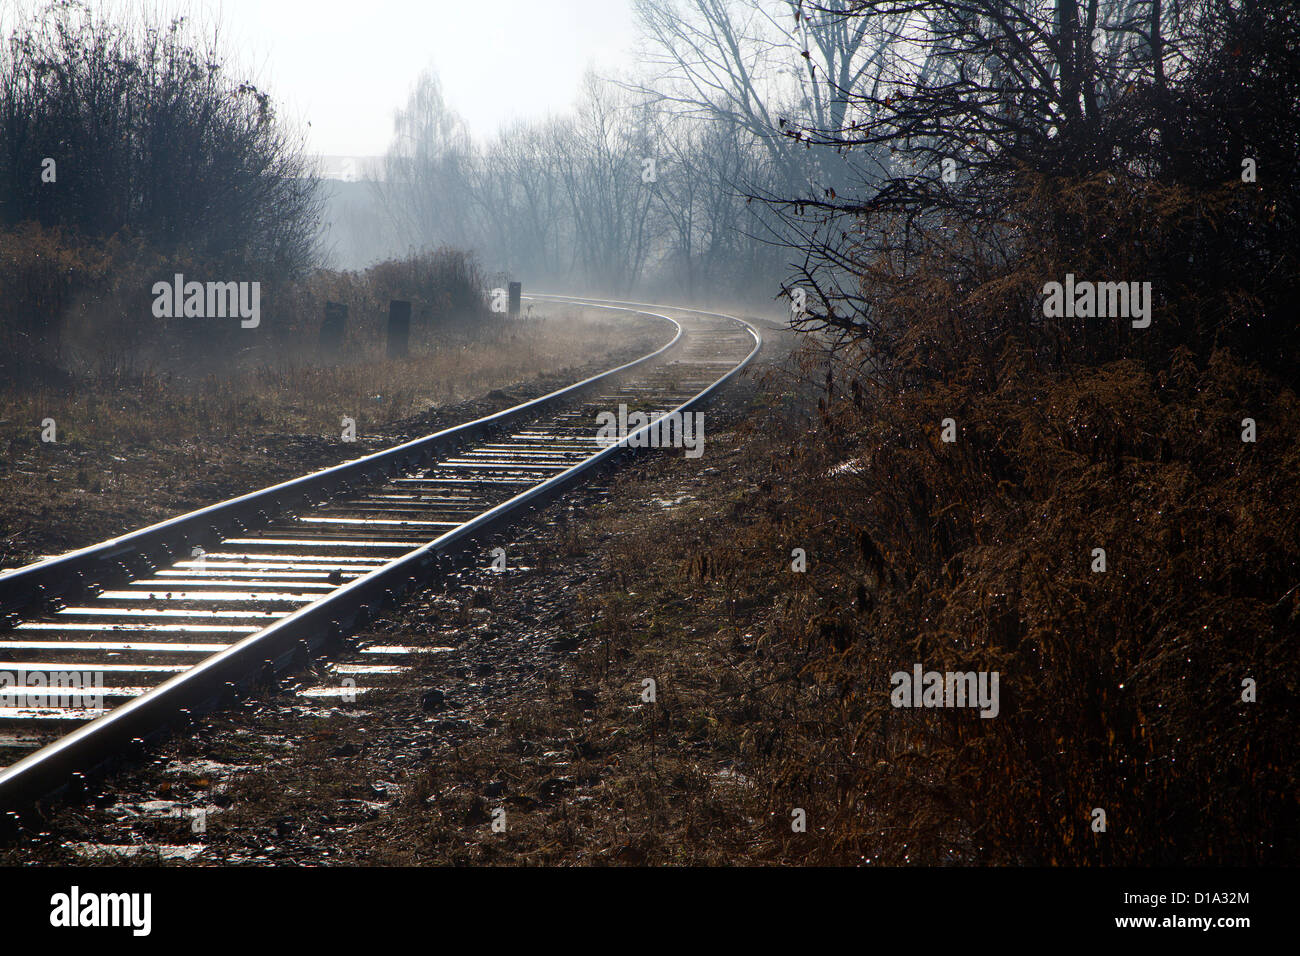 rails in the fog - Stock Image